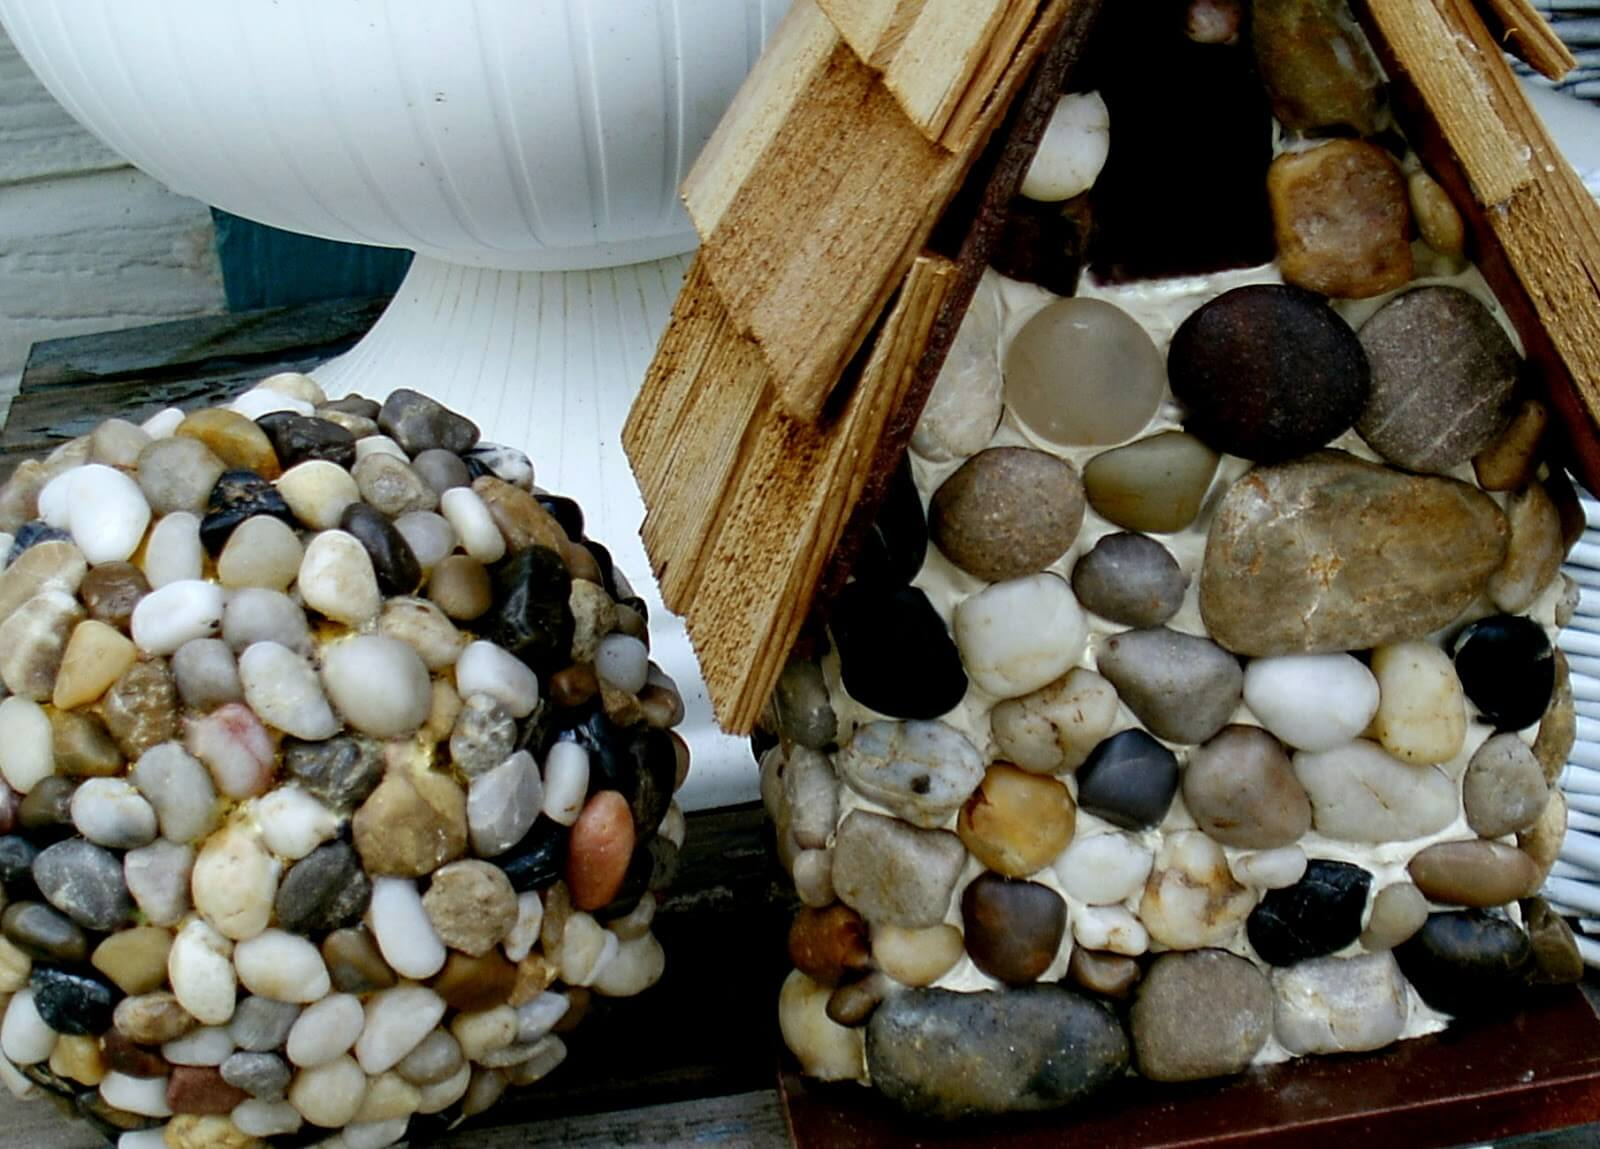 Cover a Ball and Birdhouse in Pebbles